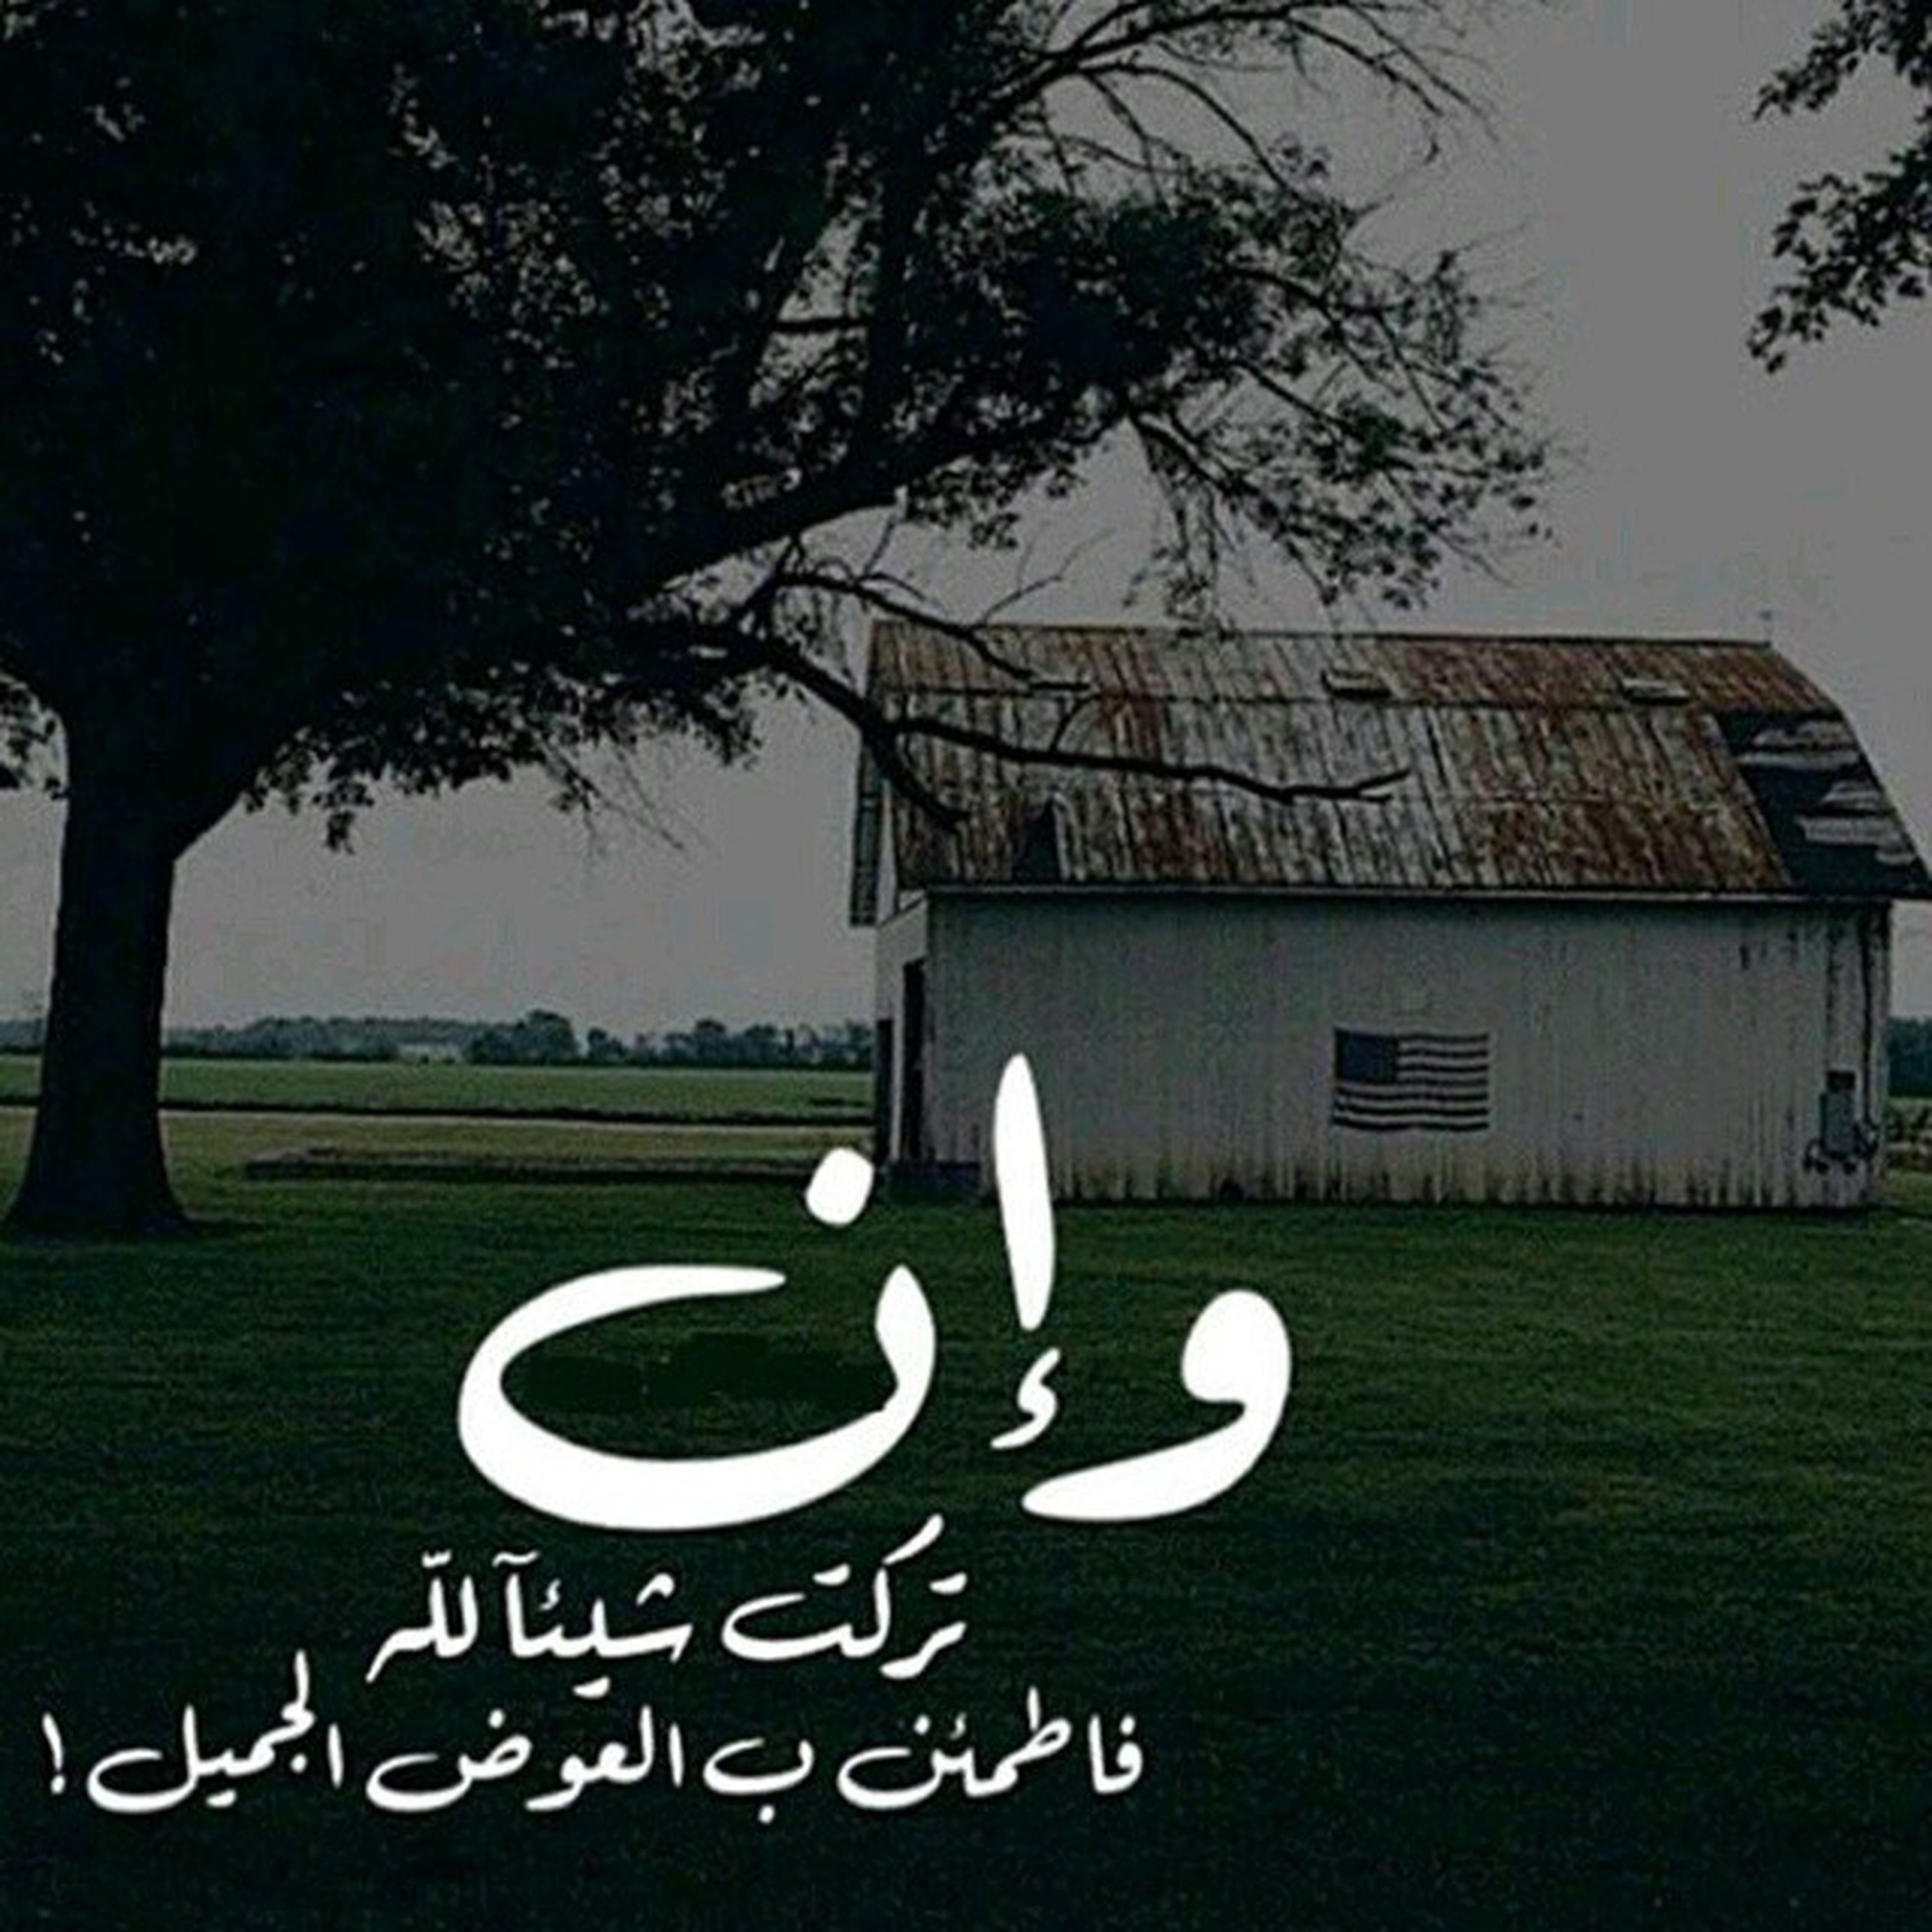 grass, tree, text, western script, art, art and craft, creativity, human representation, built structure, communication, architecture, animal representation, building exterior, green color, sky, no people, field, day, lawn